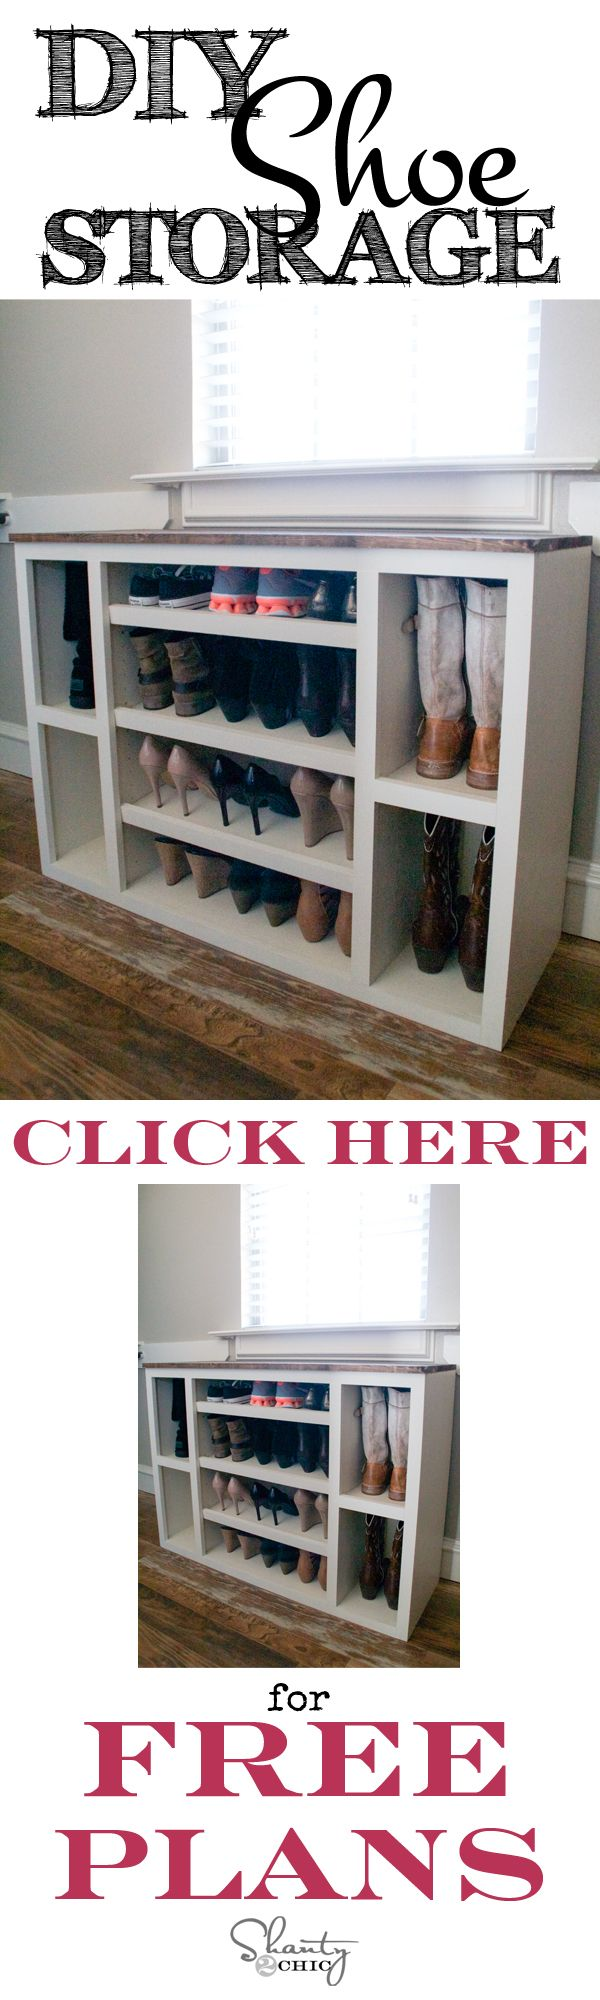 DIY Shoe Storage Cabinet // Free Plans at Shanty-2-Chic.com